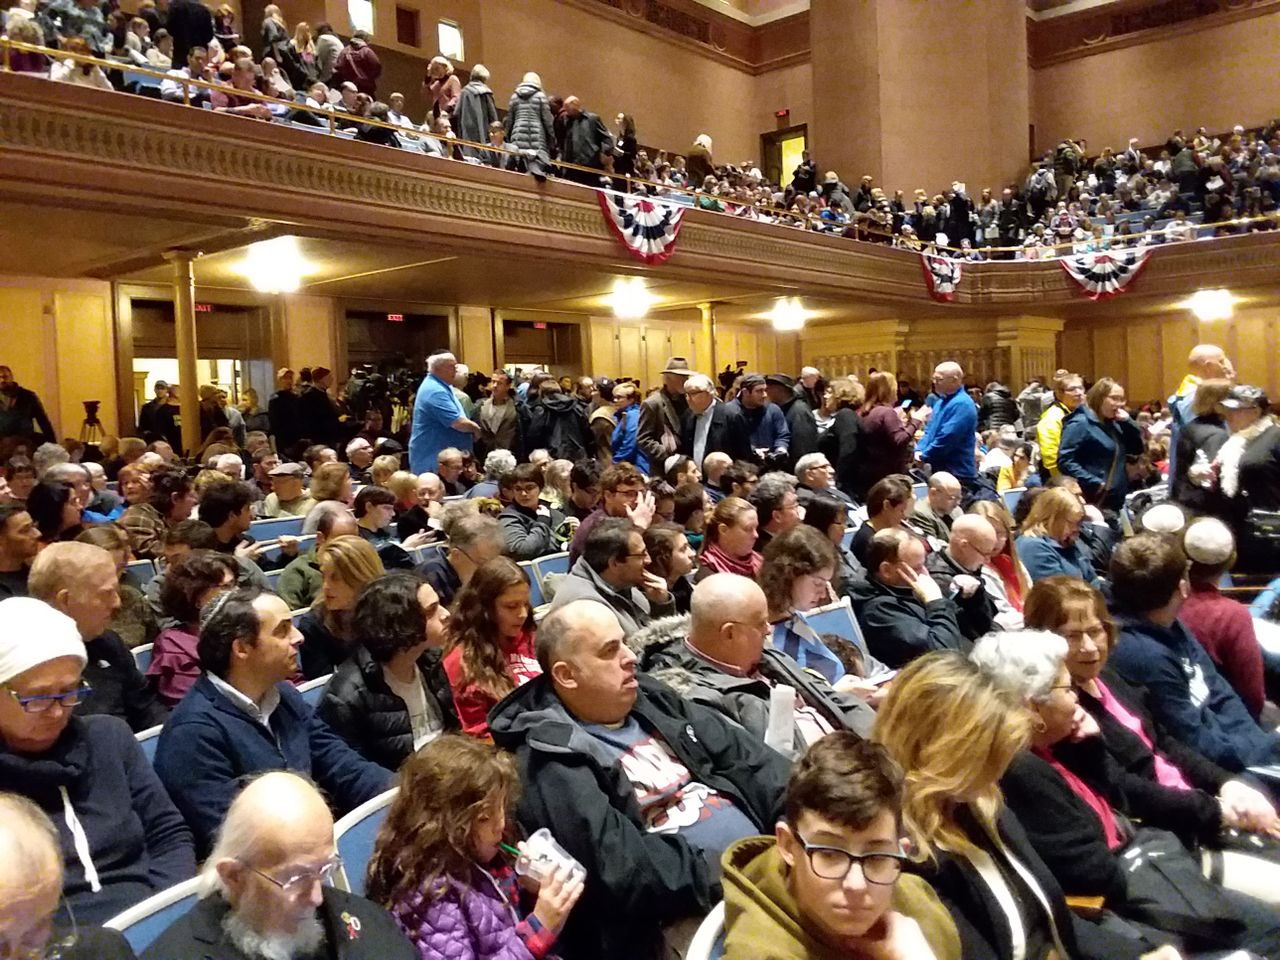 Over 2,500 people packed the Soldiers and Sailors hall in Pittsburgh for Sunday's memorial for those killed in the Pittsburgh, USA synagogue on Saturday